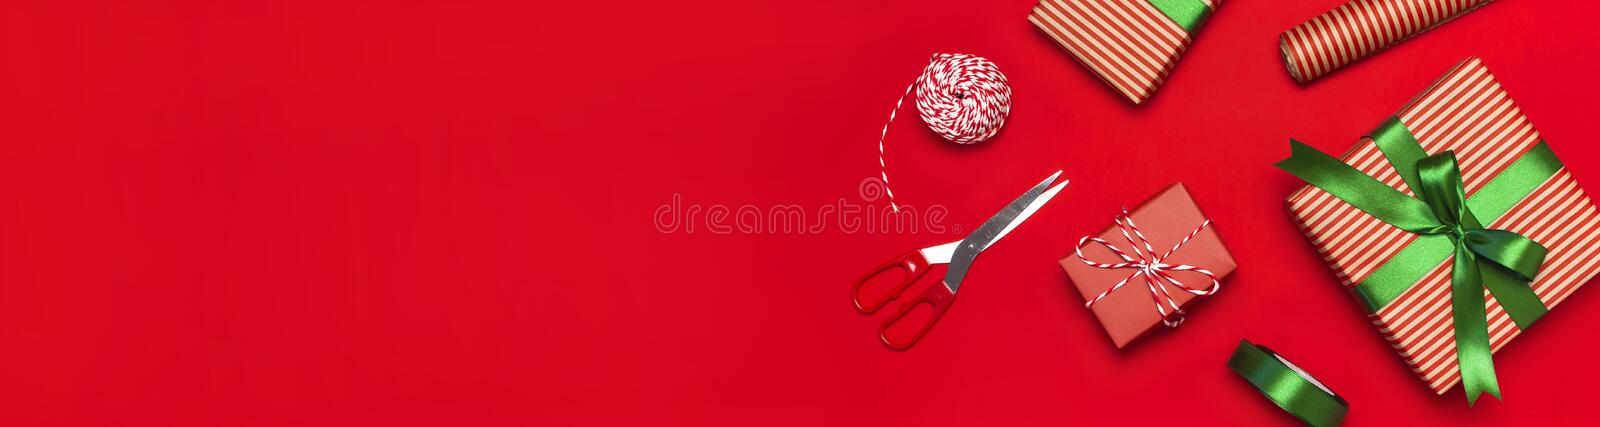 Gift boxes, packing paper, scissors, ribbon on red background. Festive background, congratulation, gift wrapping, Christmas and ne royalty free stock images